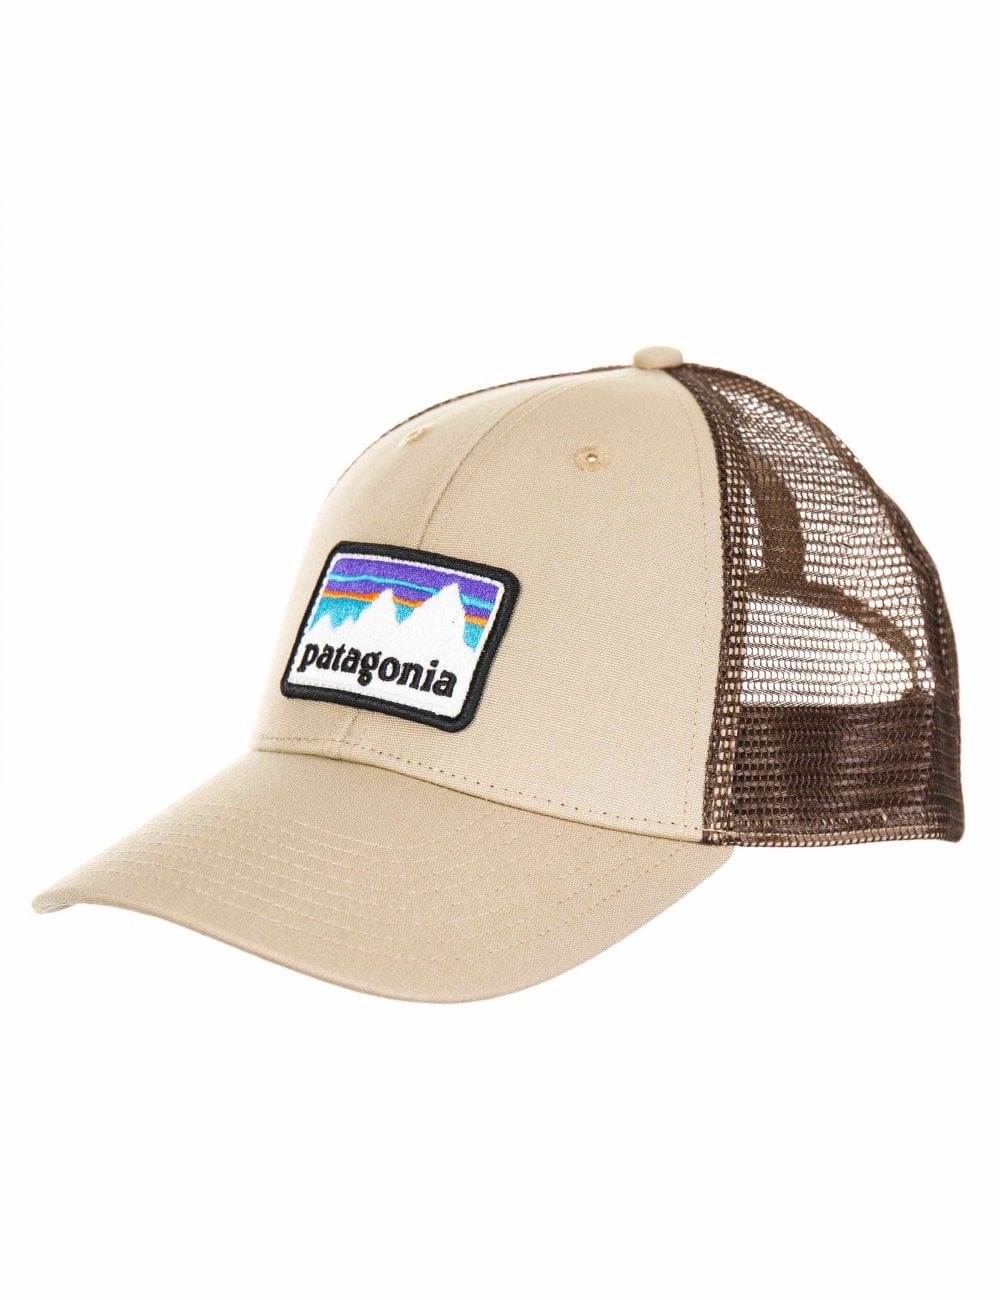 87751489f4d Patagonia Shop Sticker Patch LoPro Trucker Hat - El Cap Khaki - Hat ...